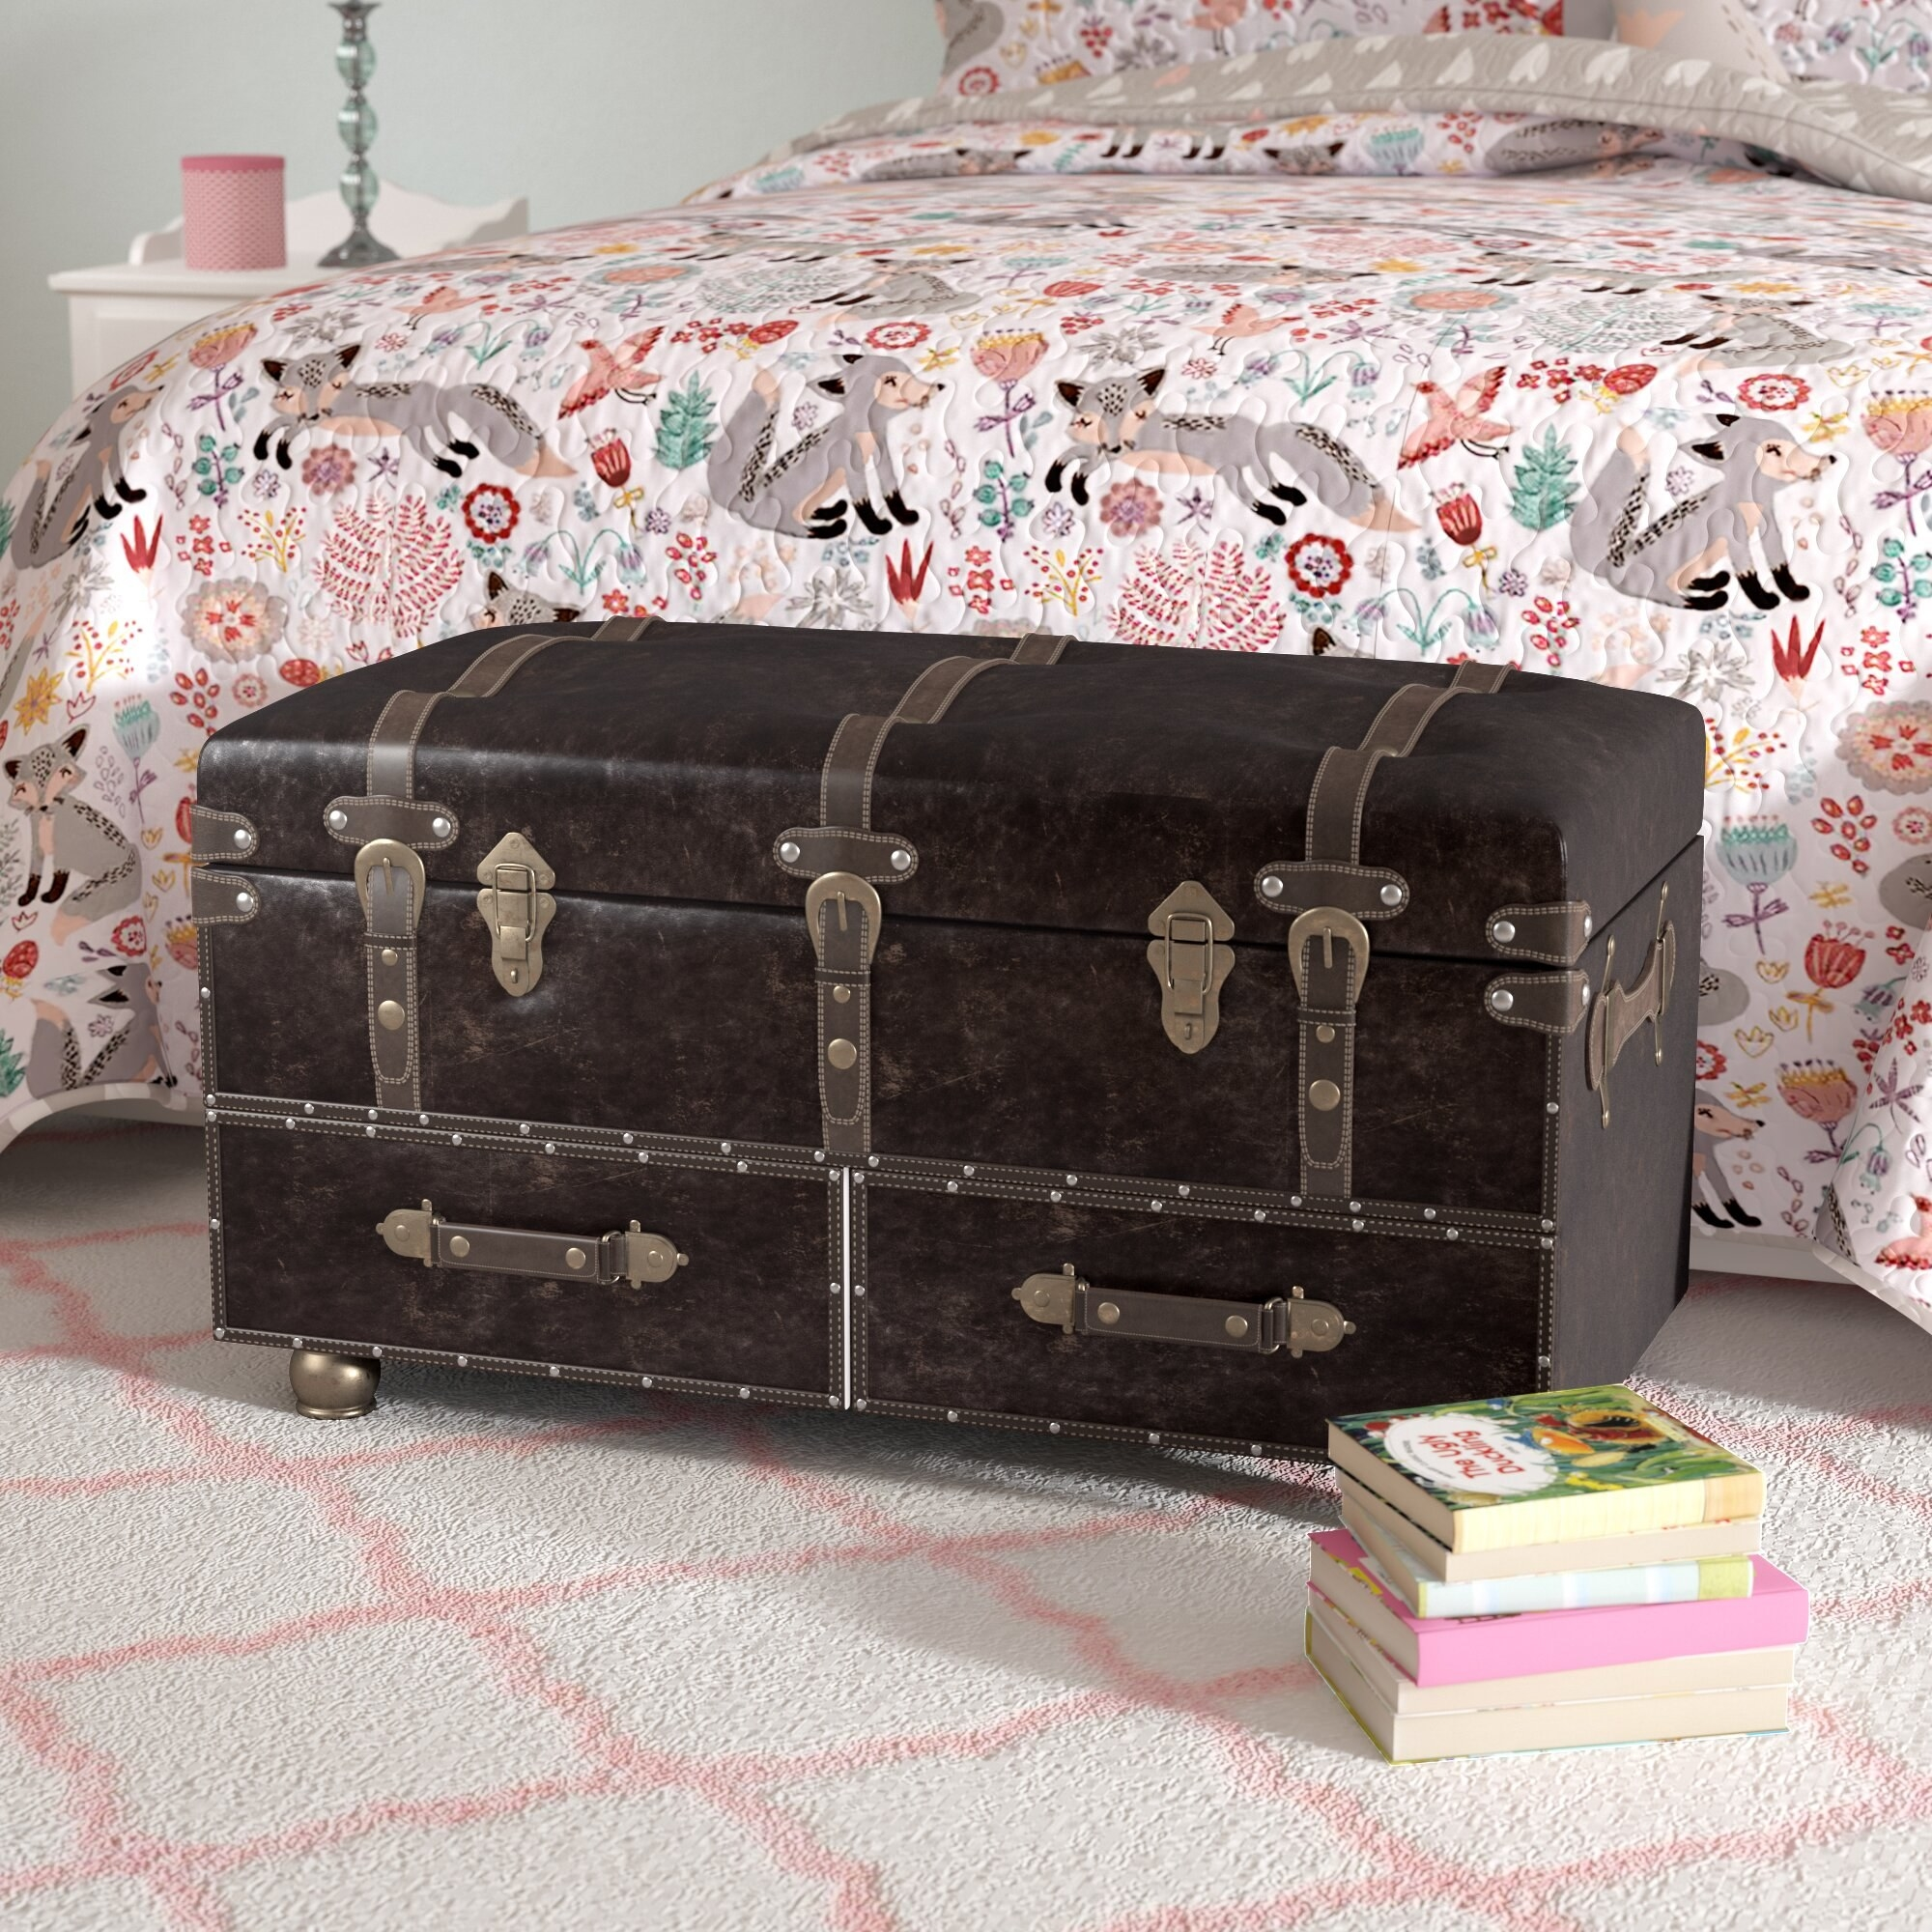 A black leather chest in front of a bed on a rug next to books